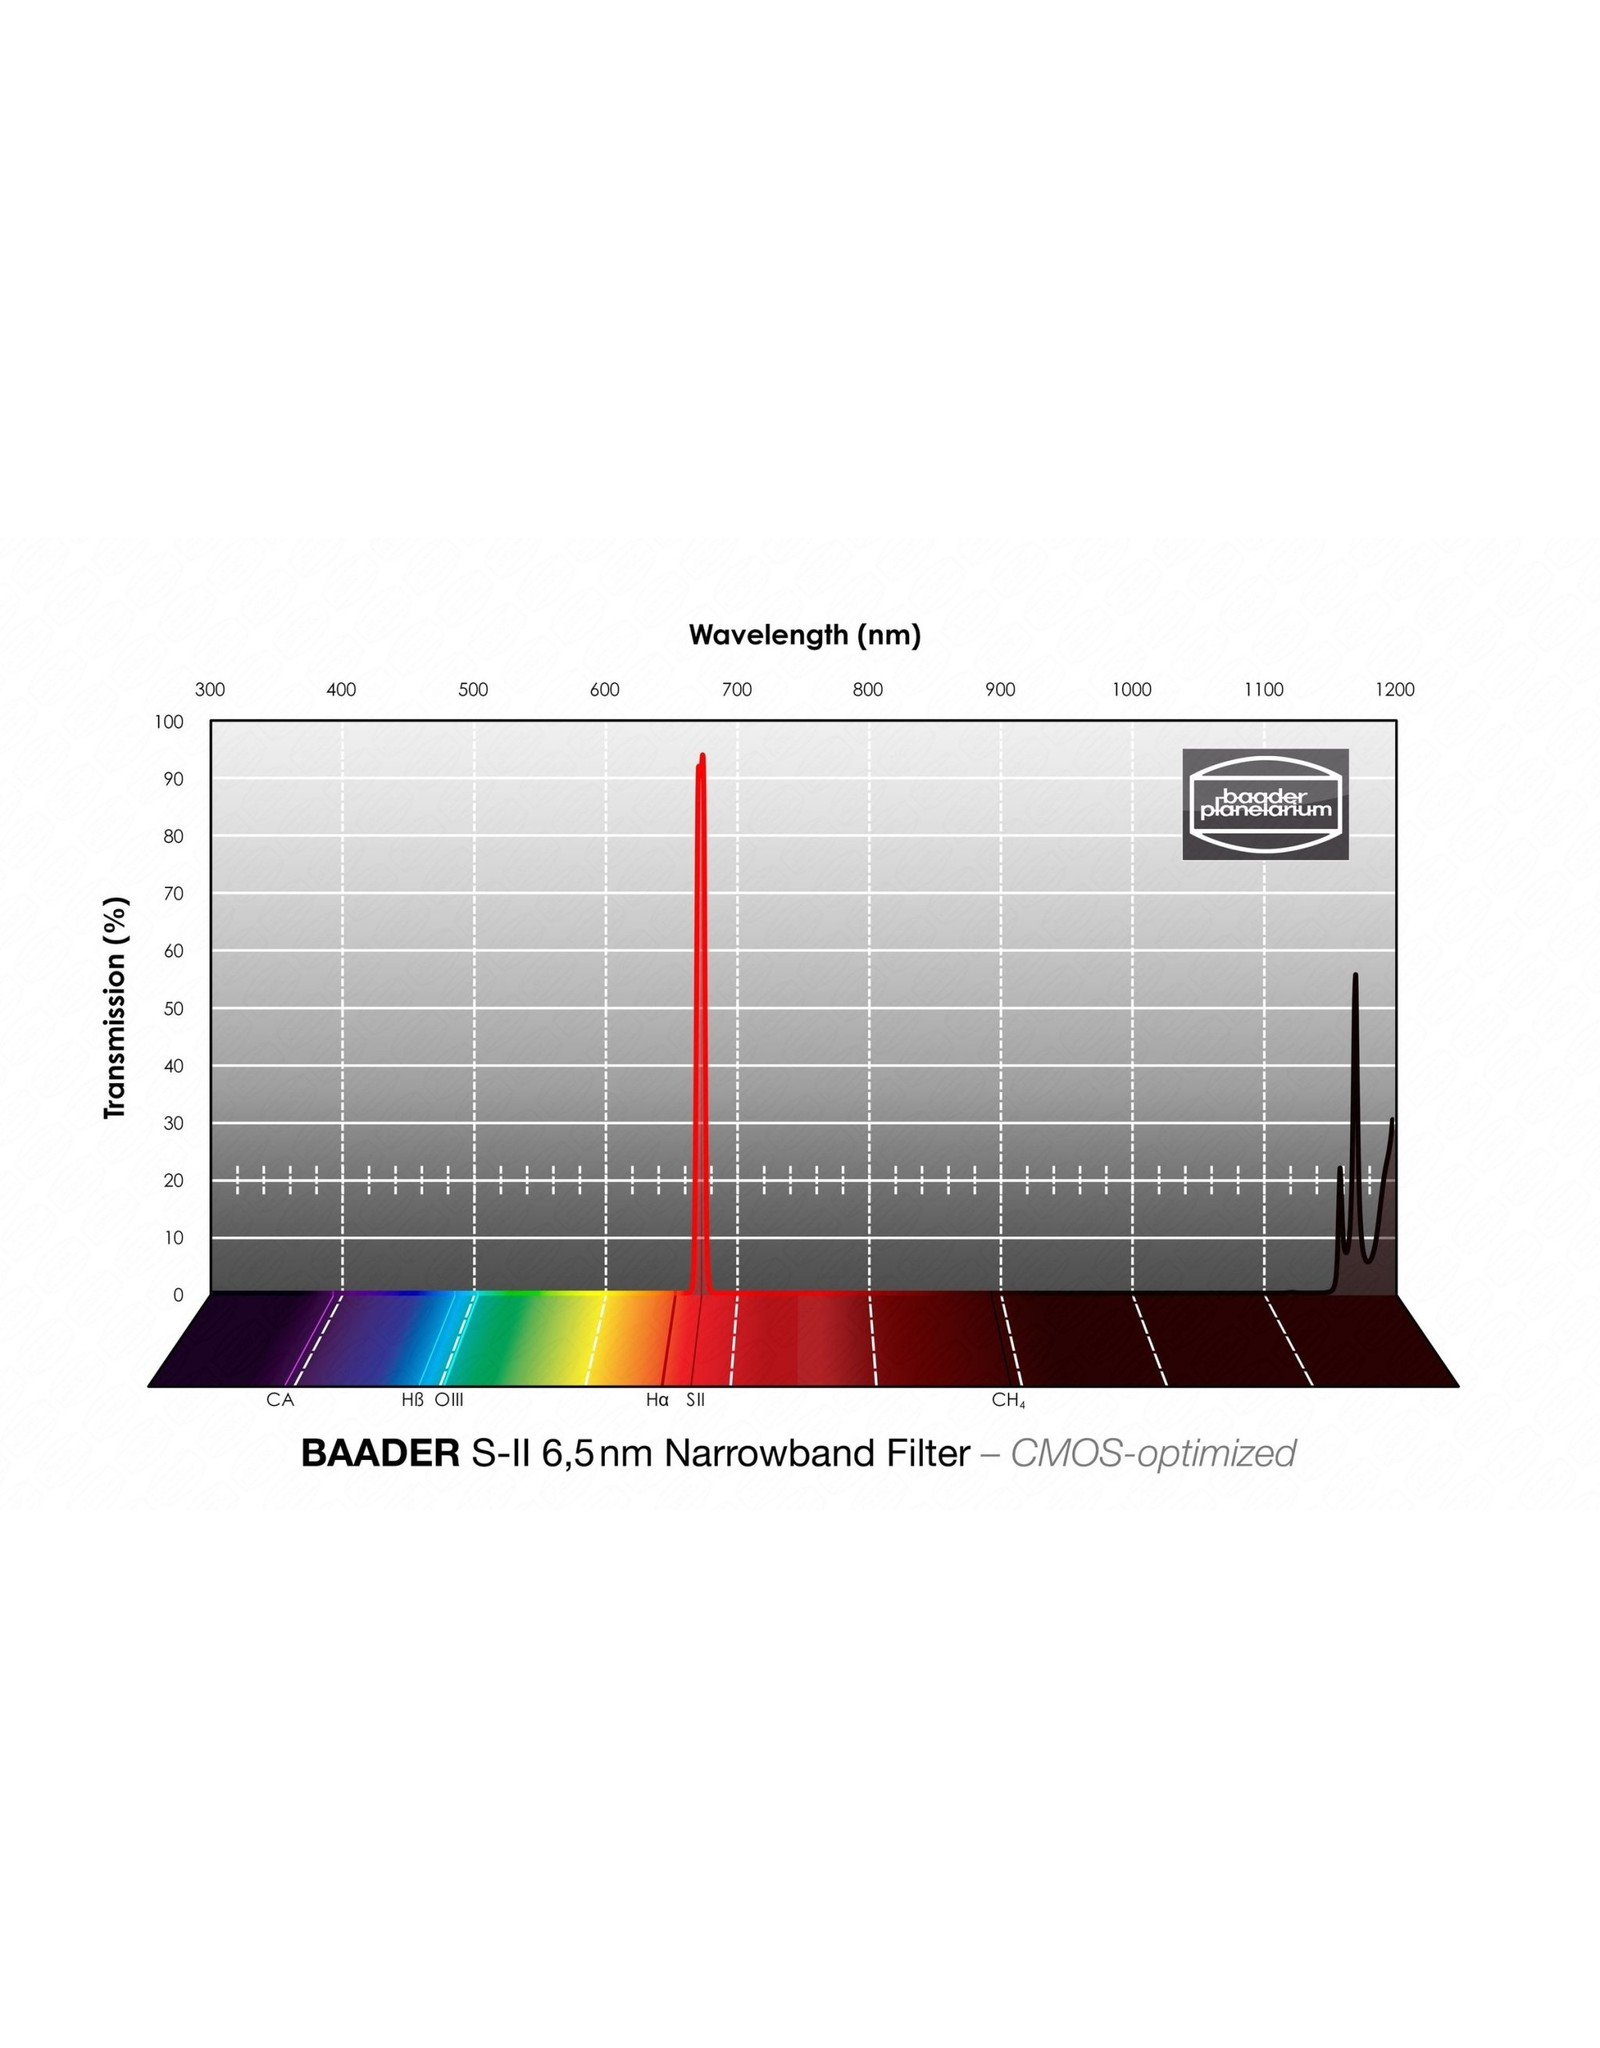 Baader Planetarium Baader 6.5nm Narrowband H-Alpha Filters – CMOS-optimized (Specify Size)